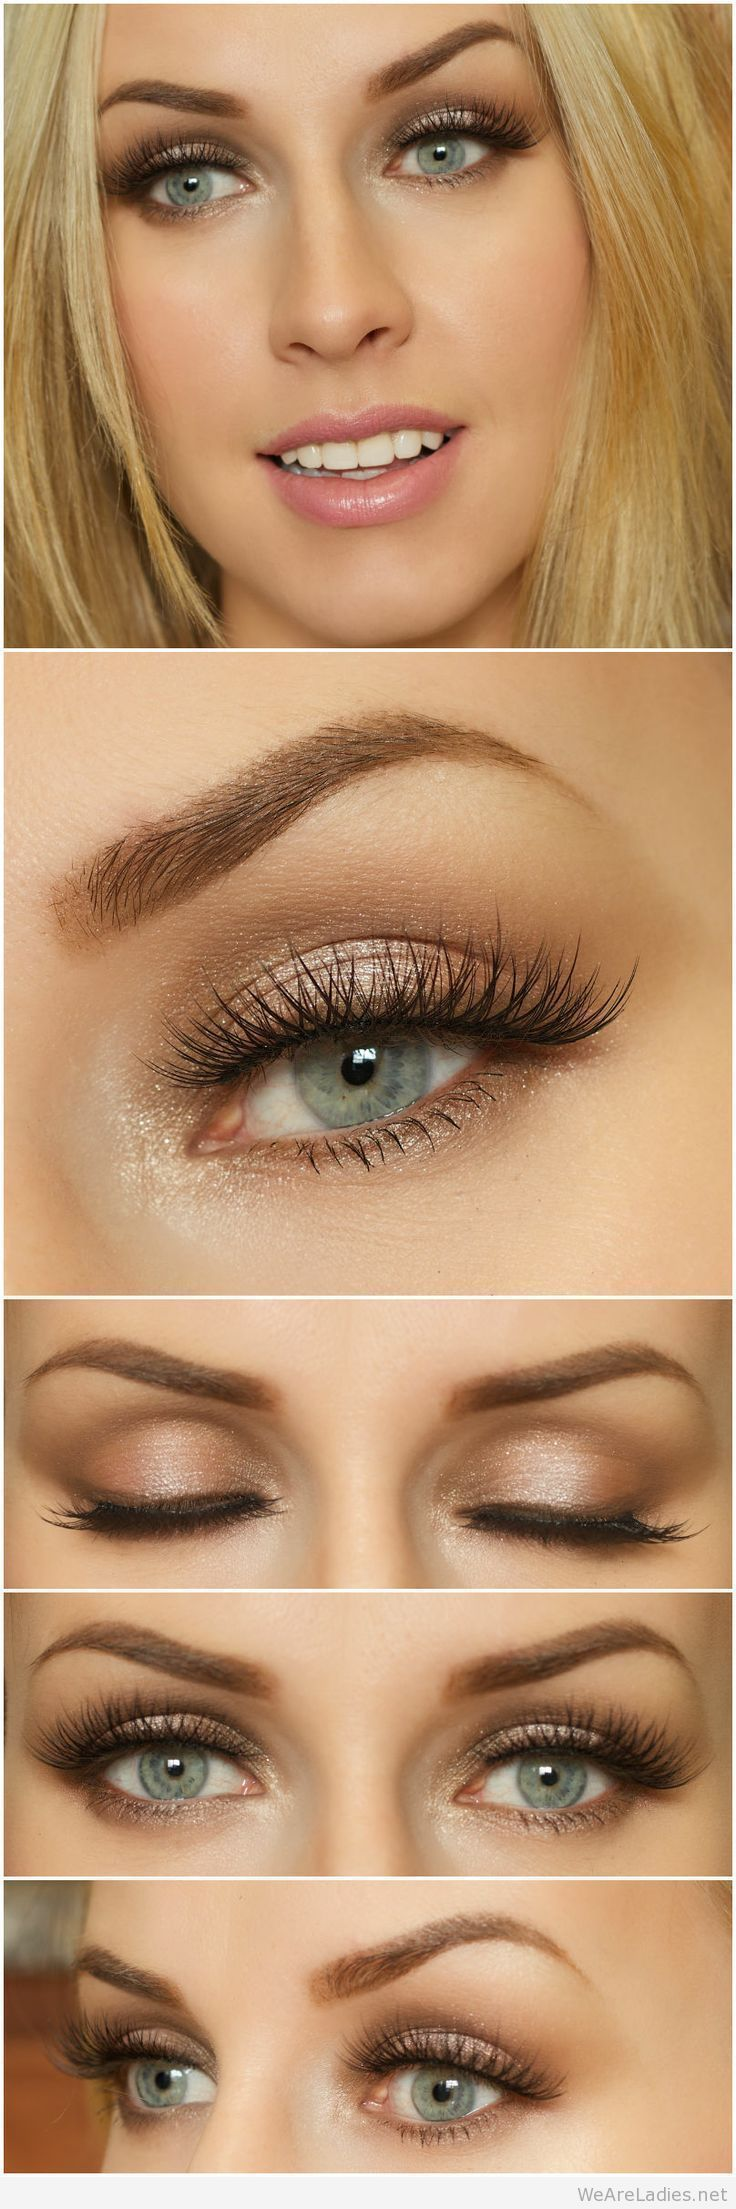 Image result for natural looking makeup for fair skin green eyes blonde hair